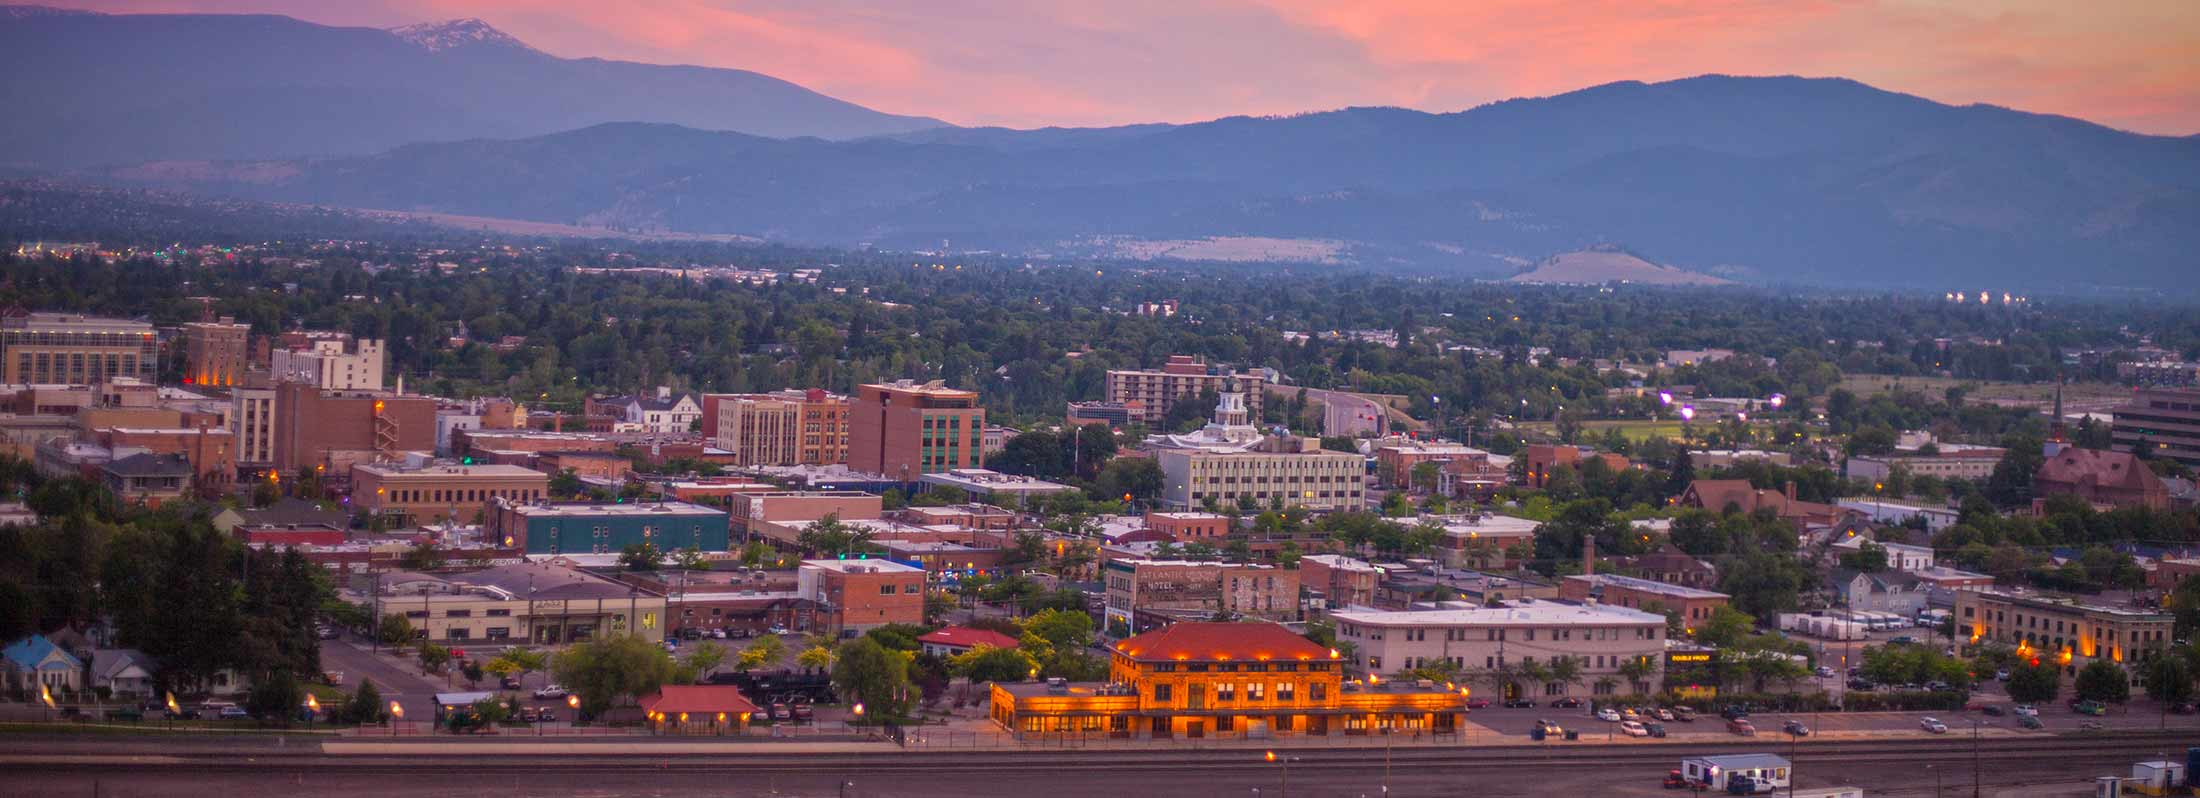 Top 100 Places to Live in 2015 - Missoula #8